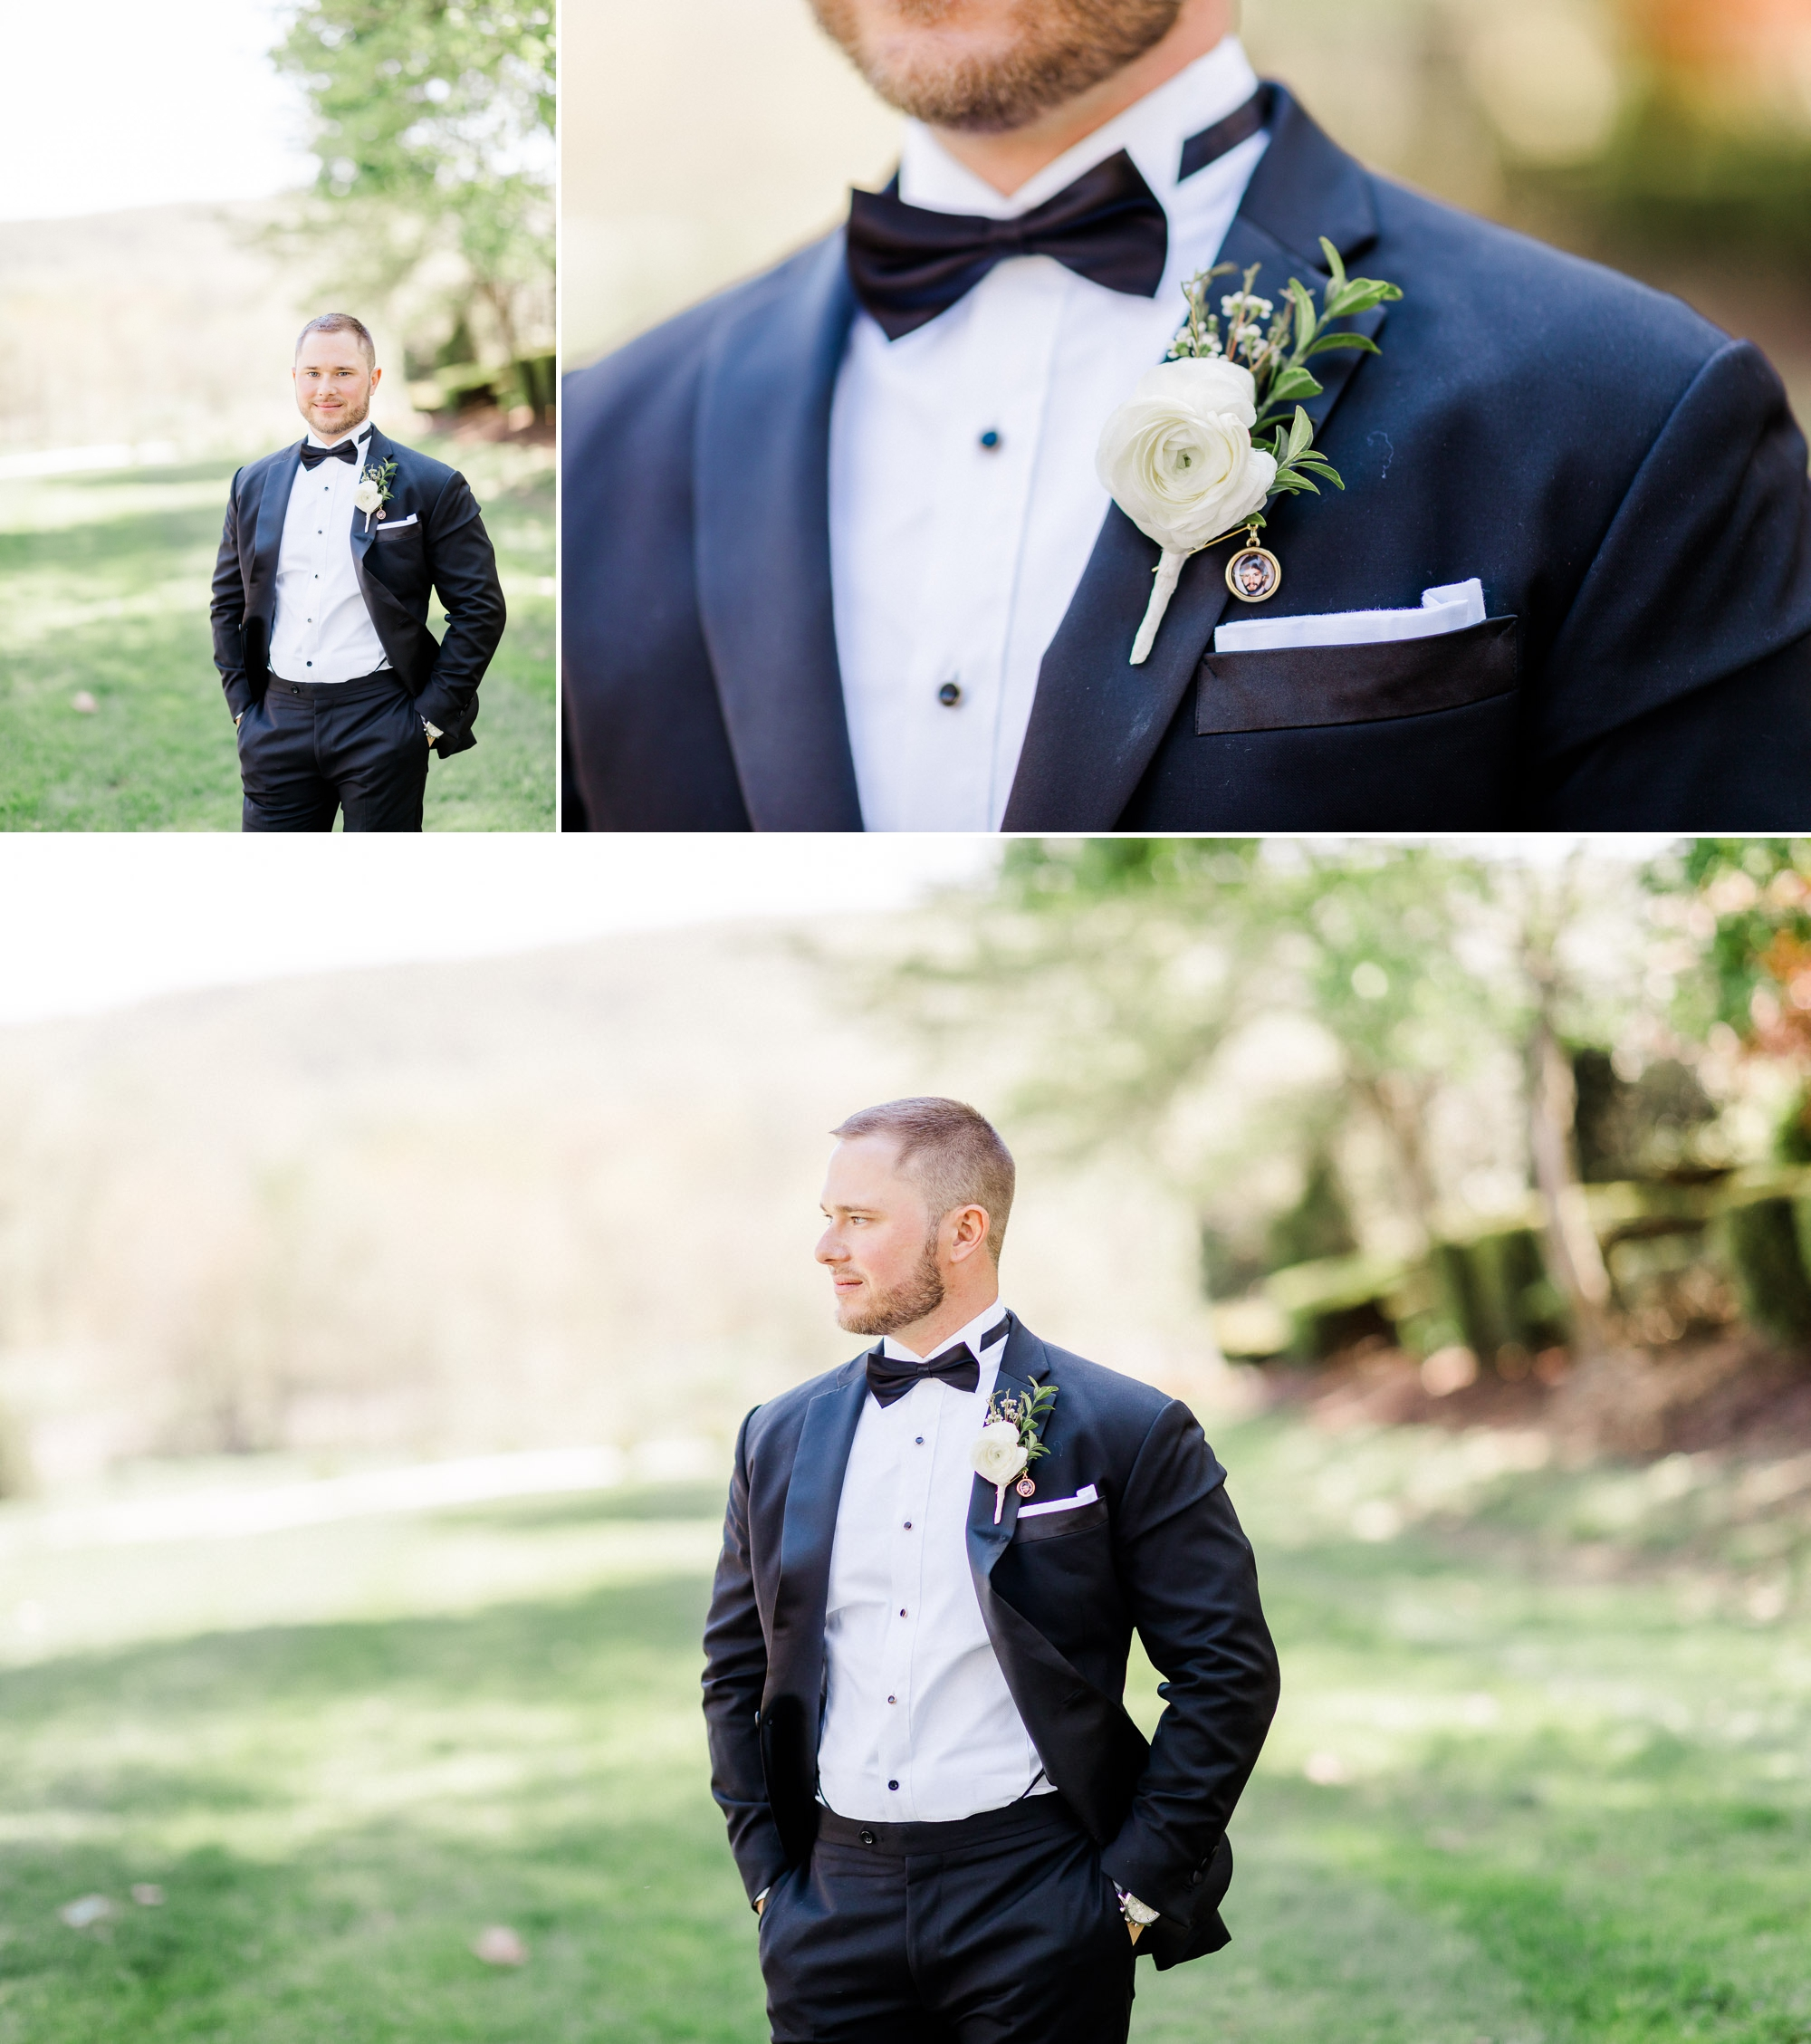 linwood-estate-romantic-spring-wedding 13.jpg